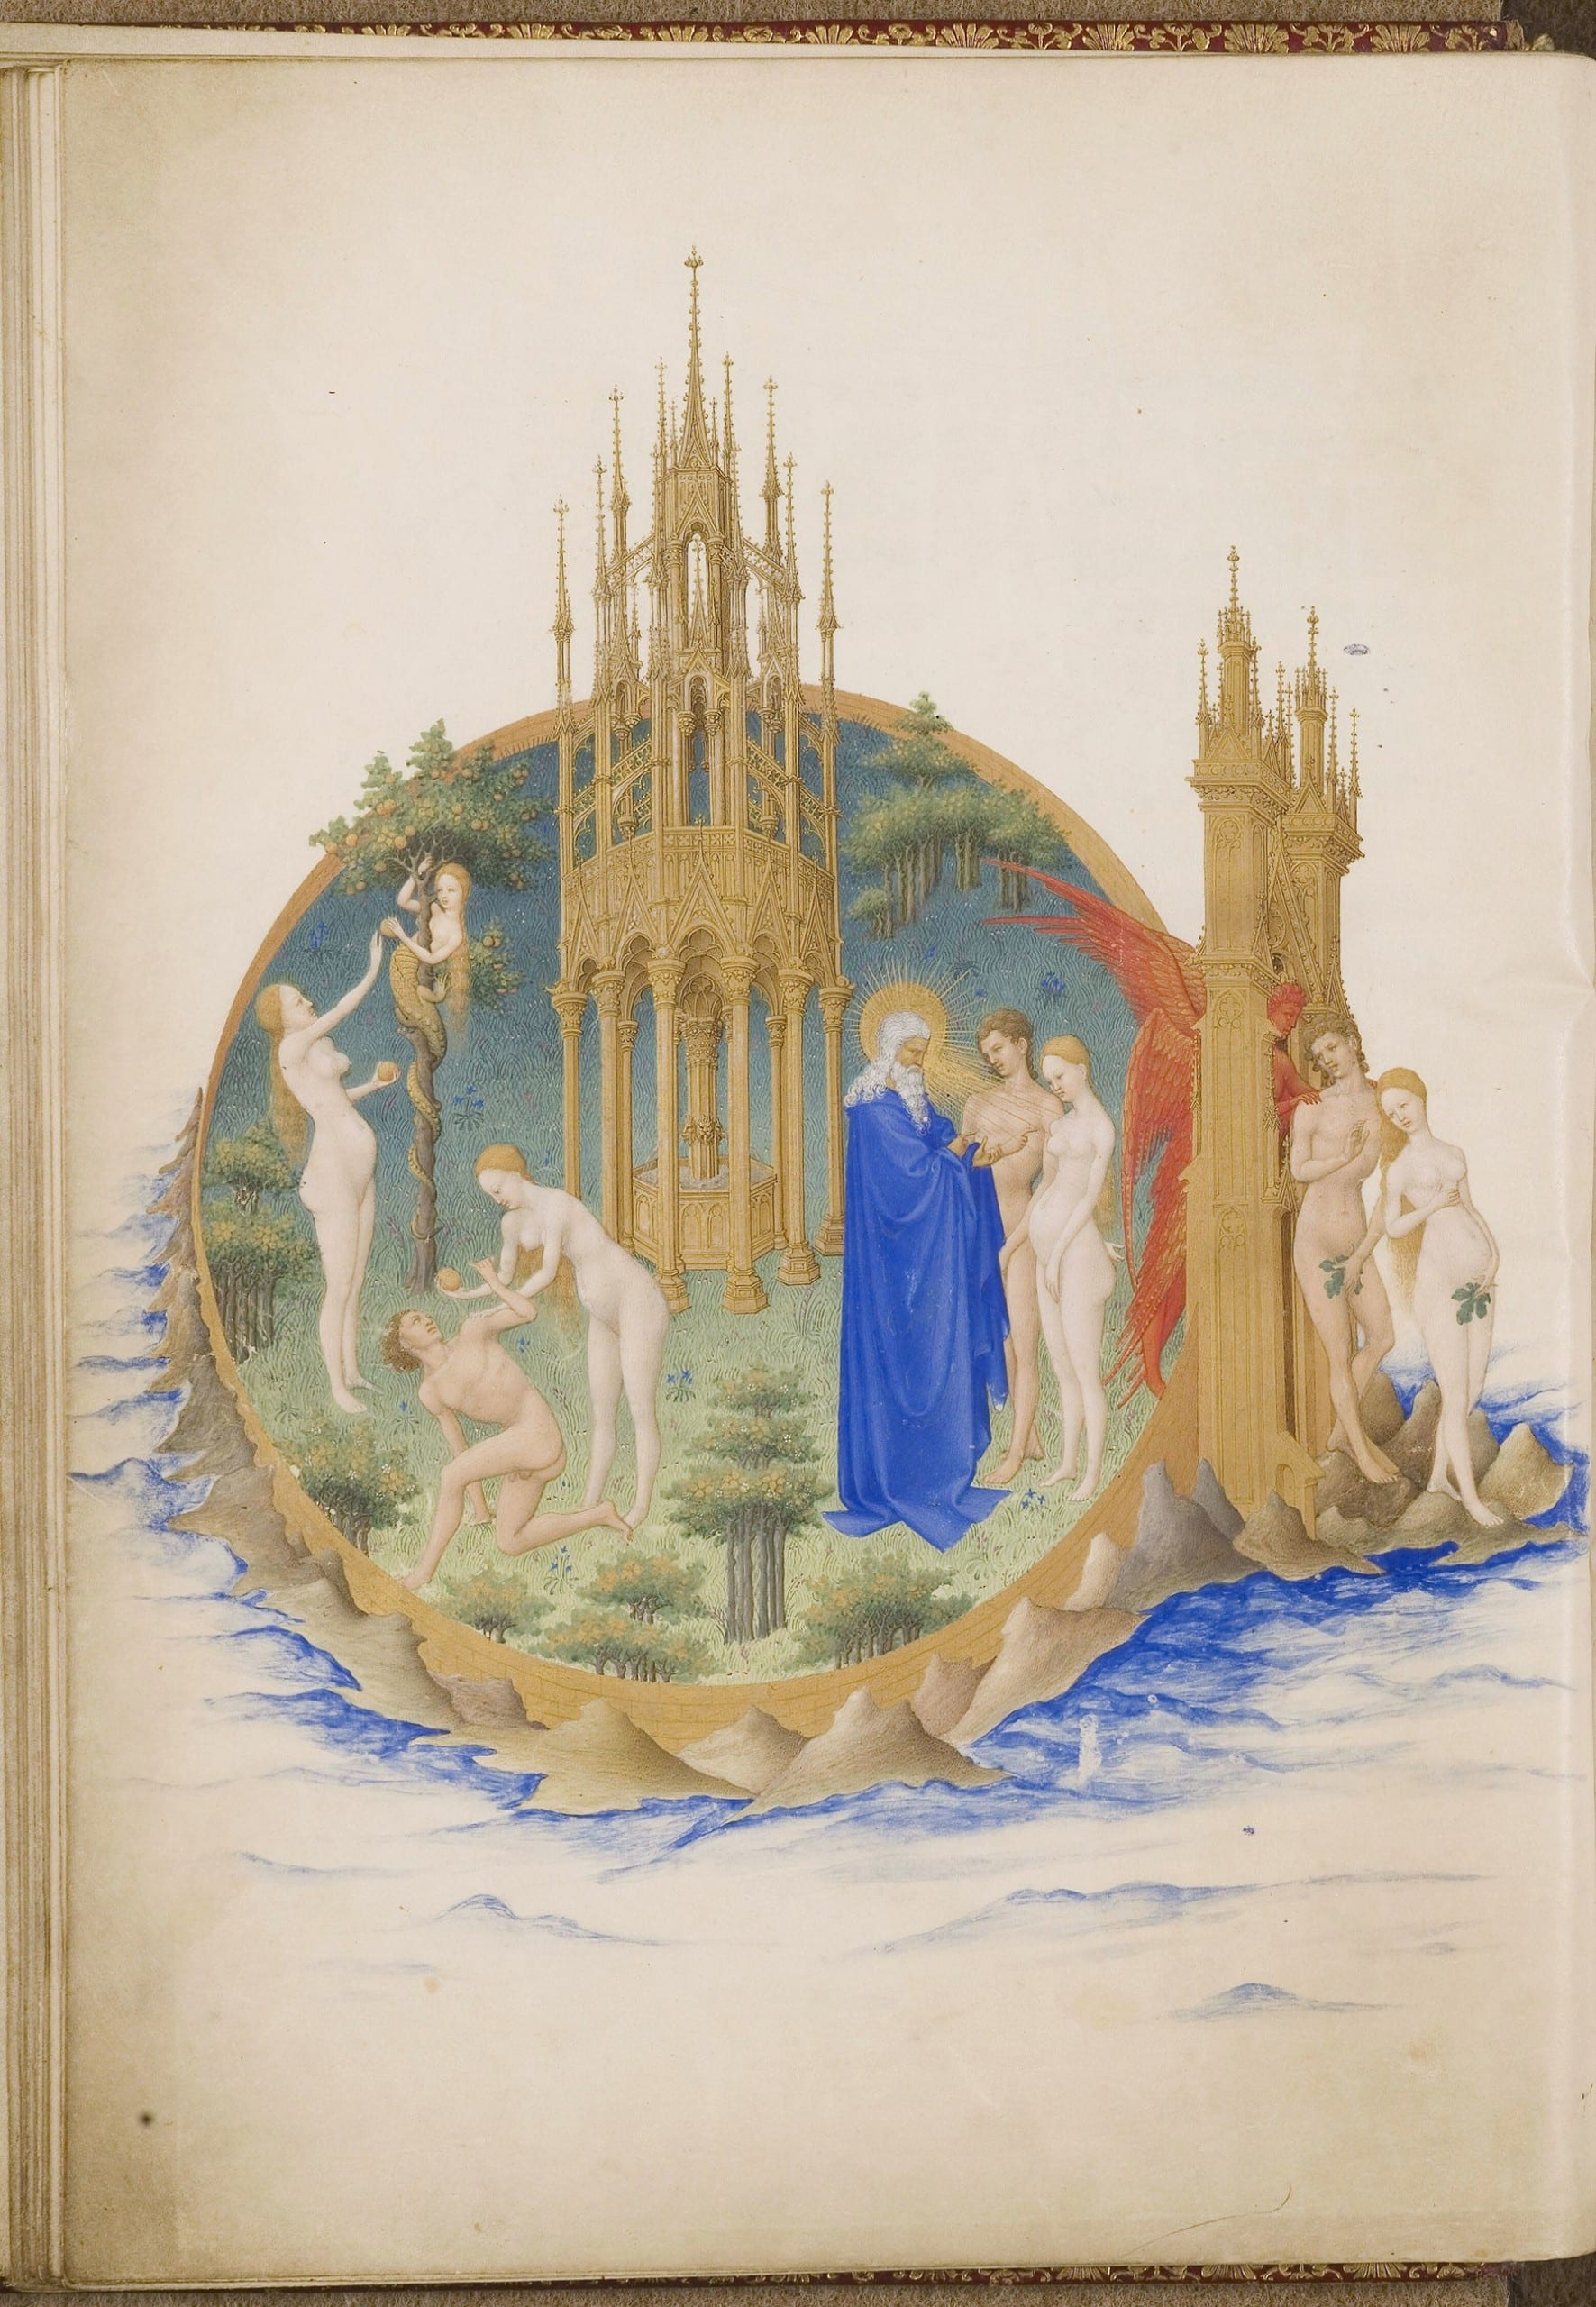 Figure 1.  The Limbourg Brothers, the Très Riches Heures, folio 25v (image provided by the CNRS-IRHT